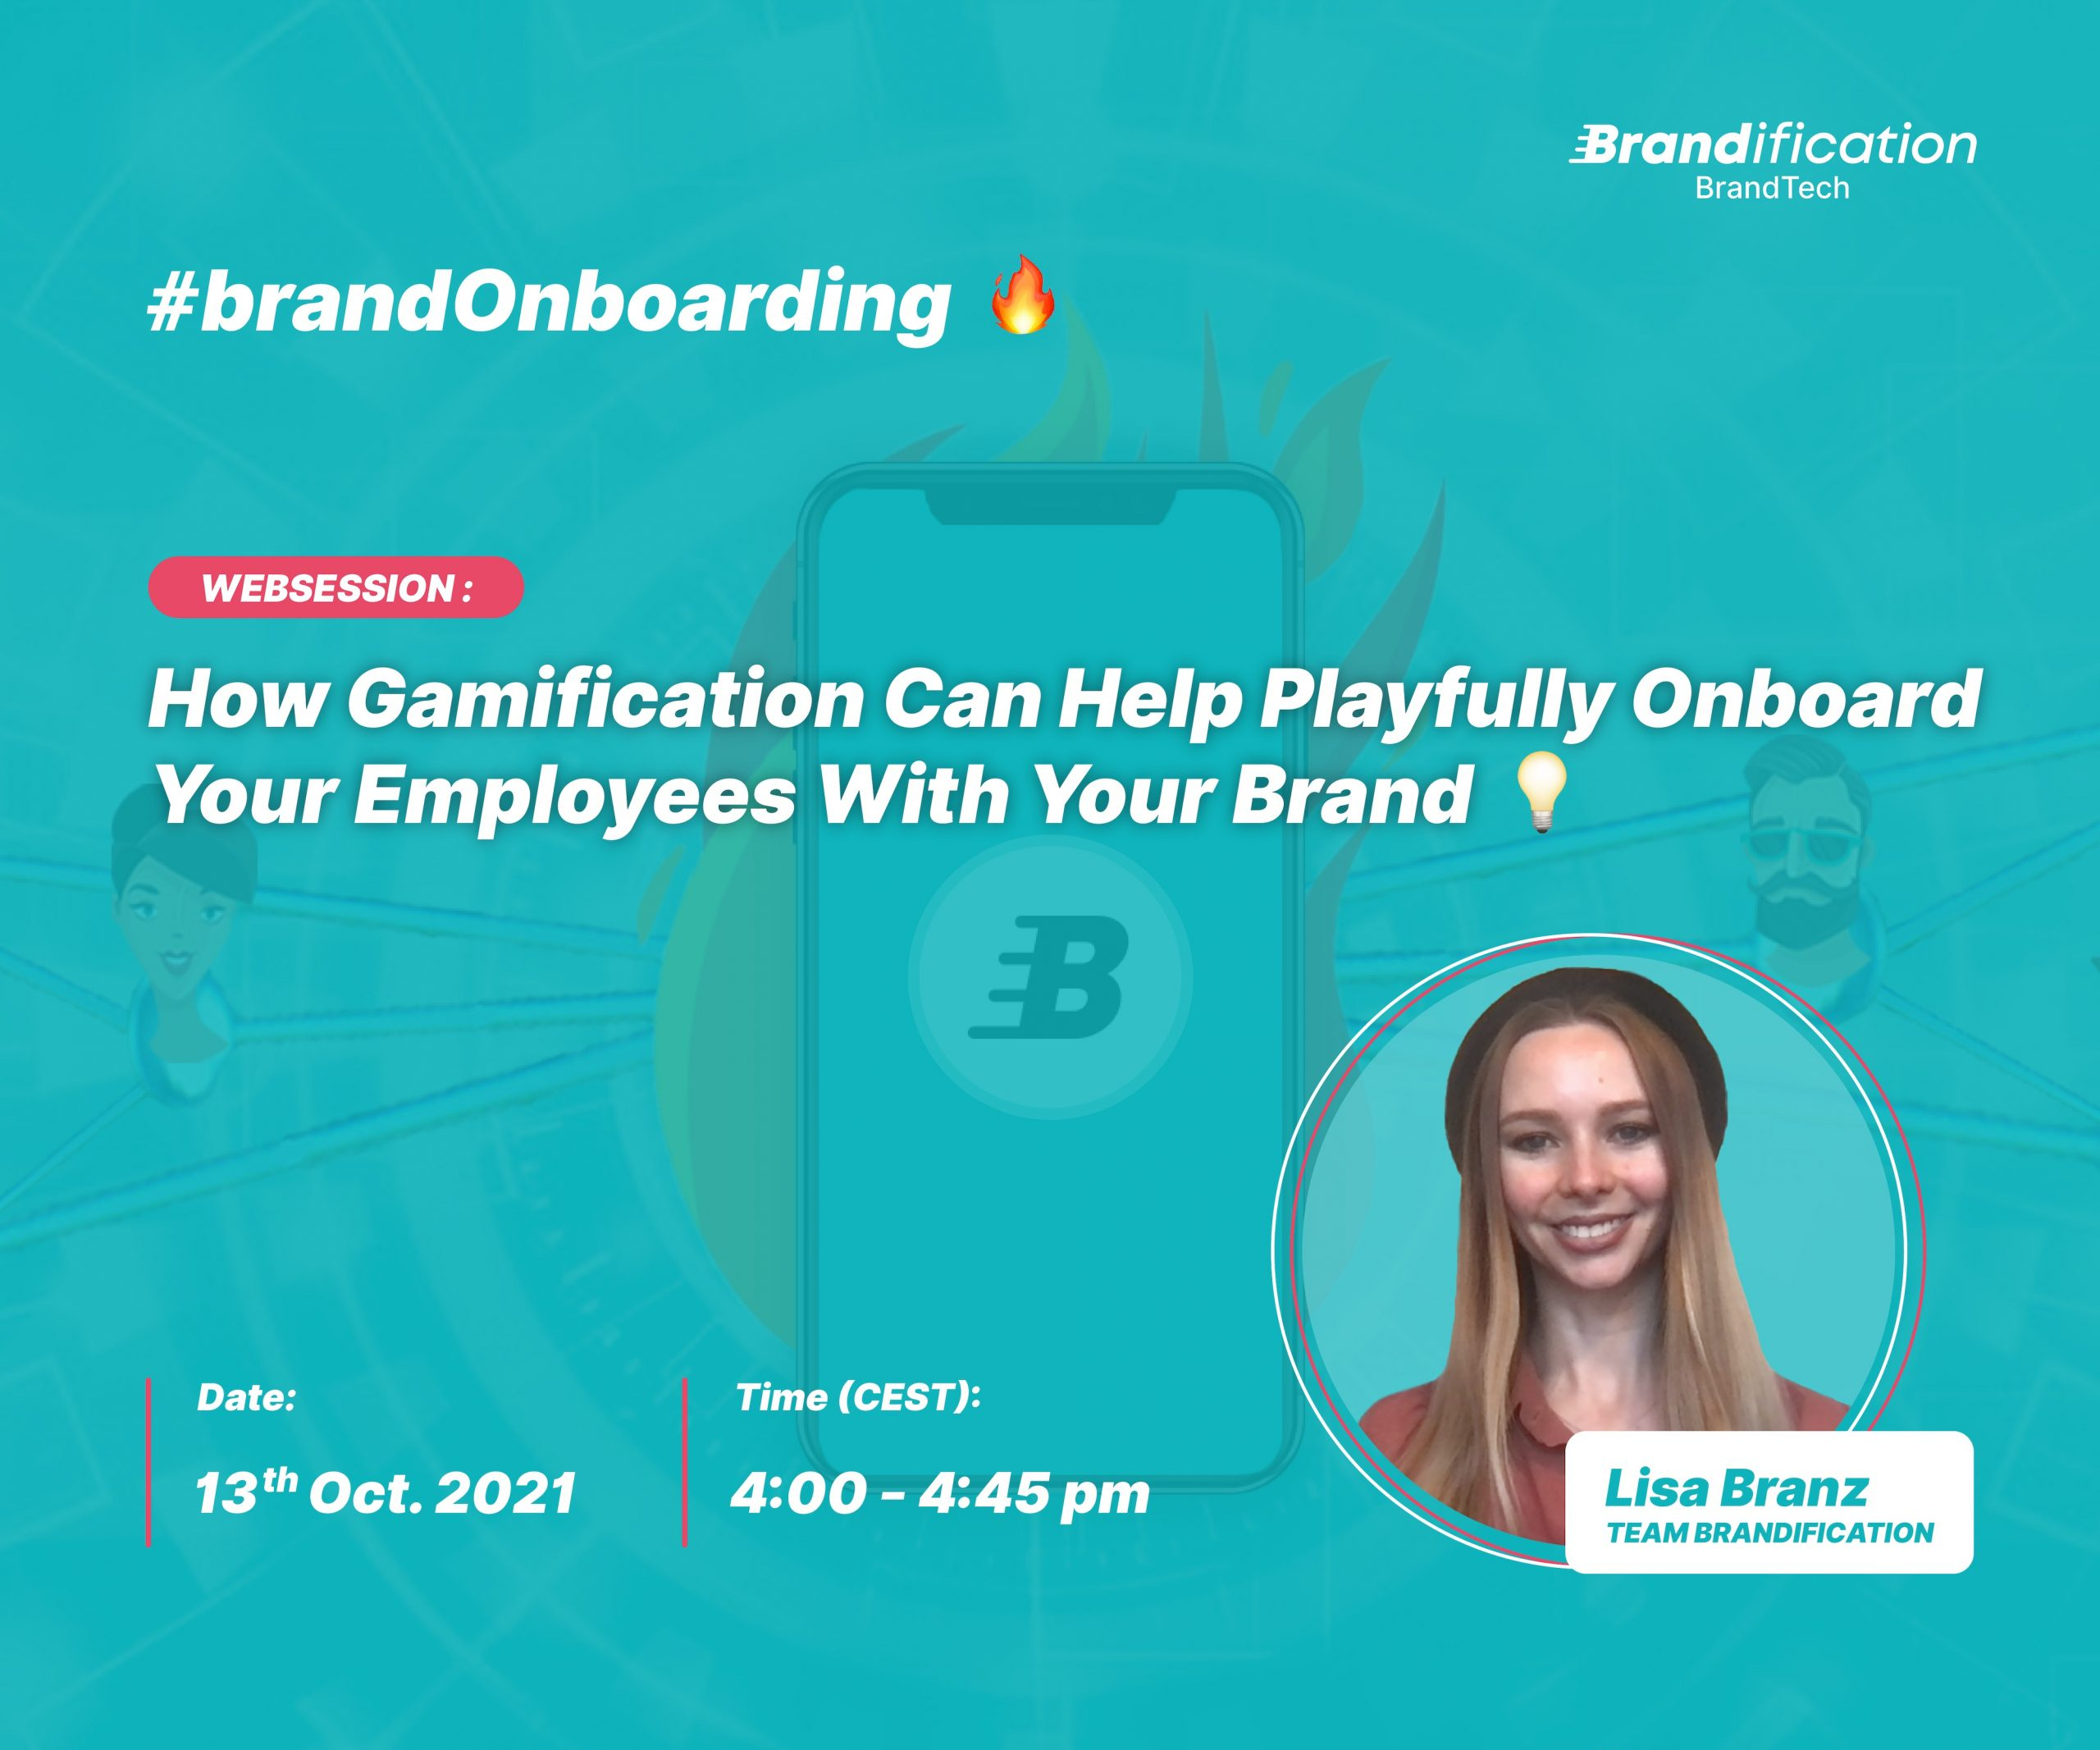 The banner for the Gamification webinar at 15.09.2021